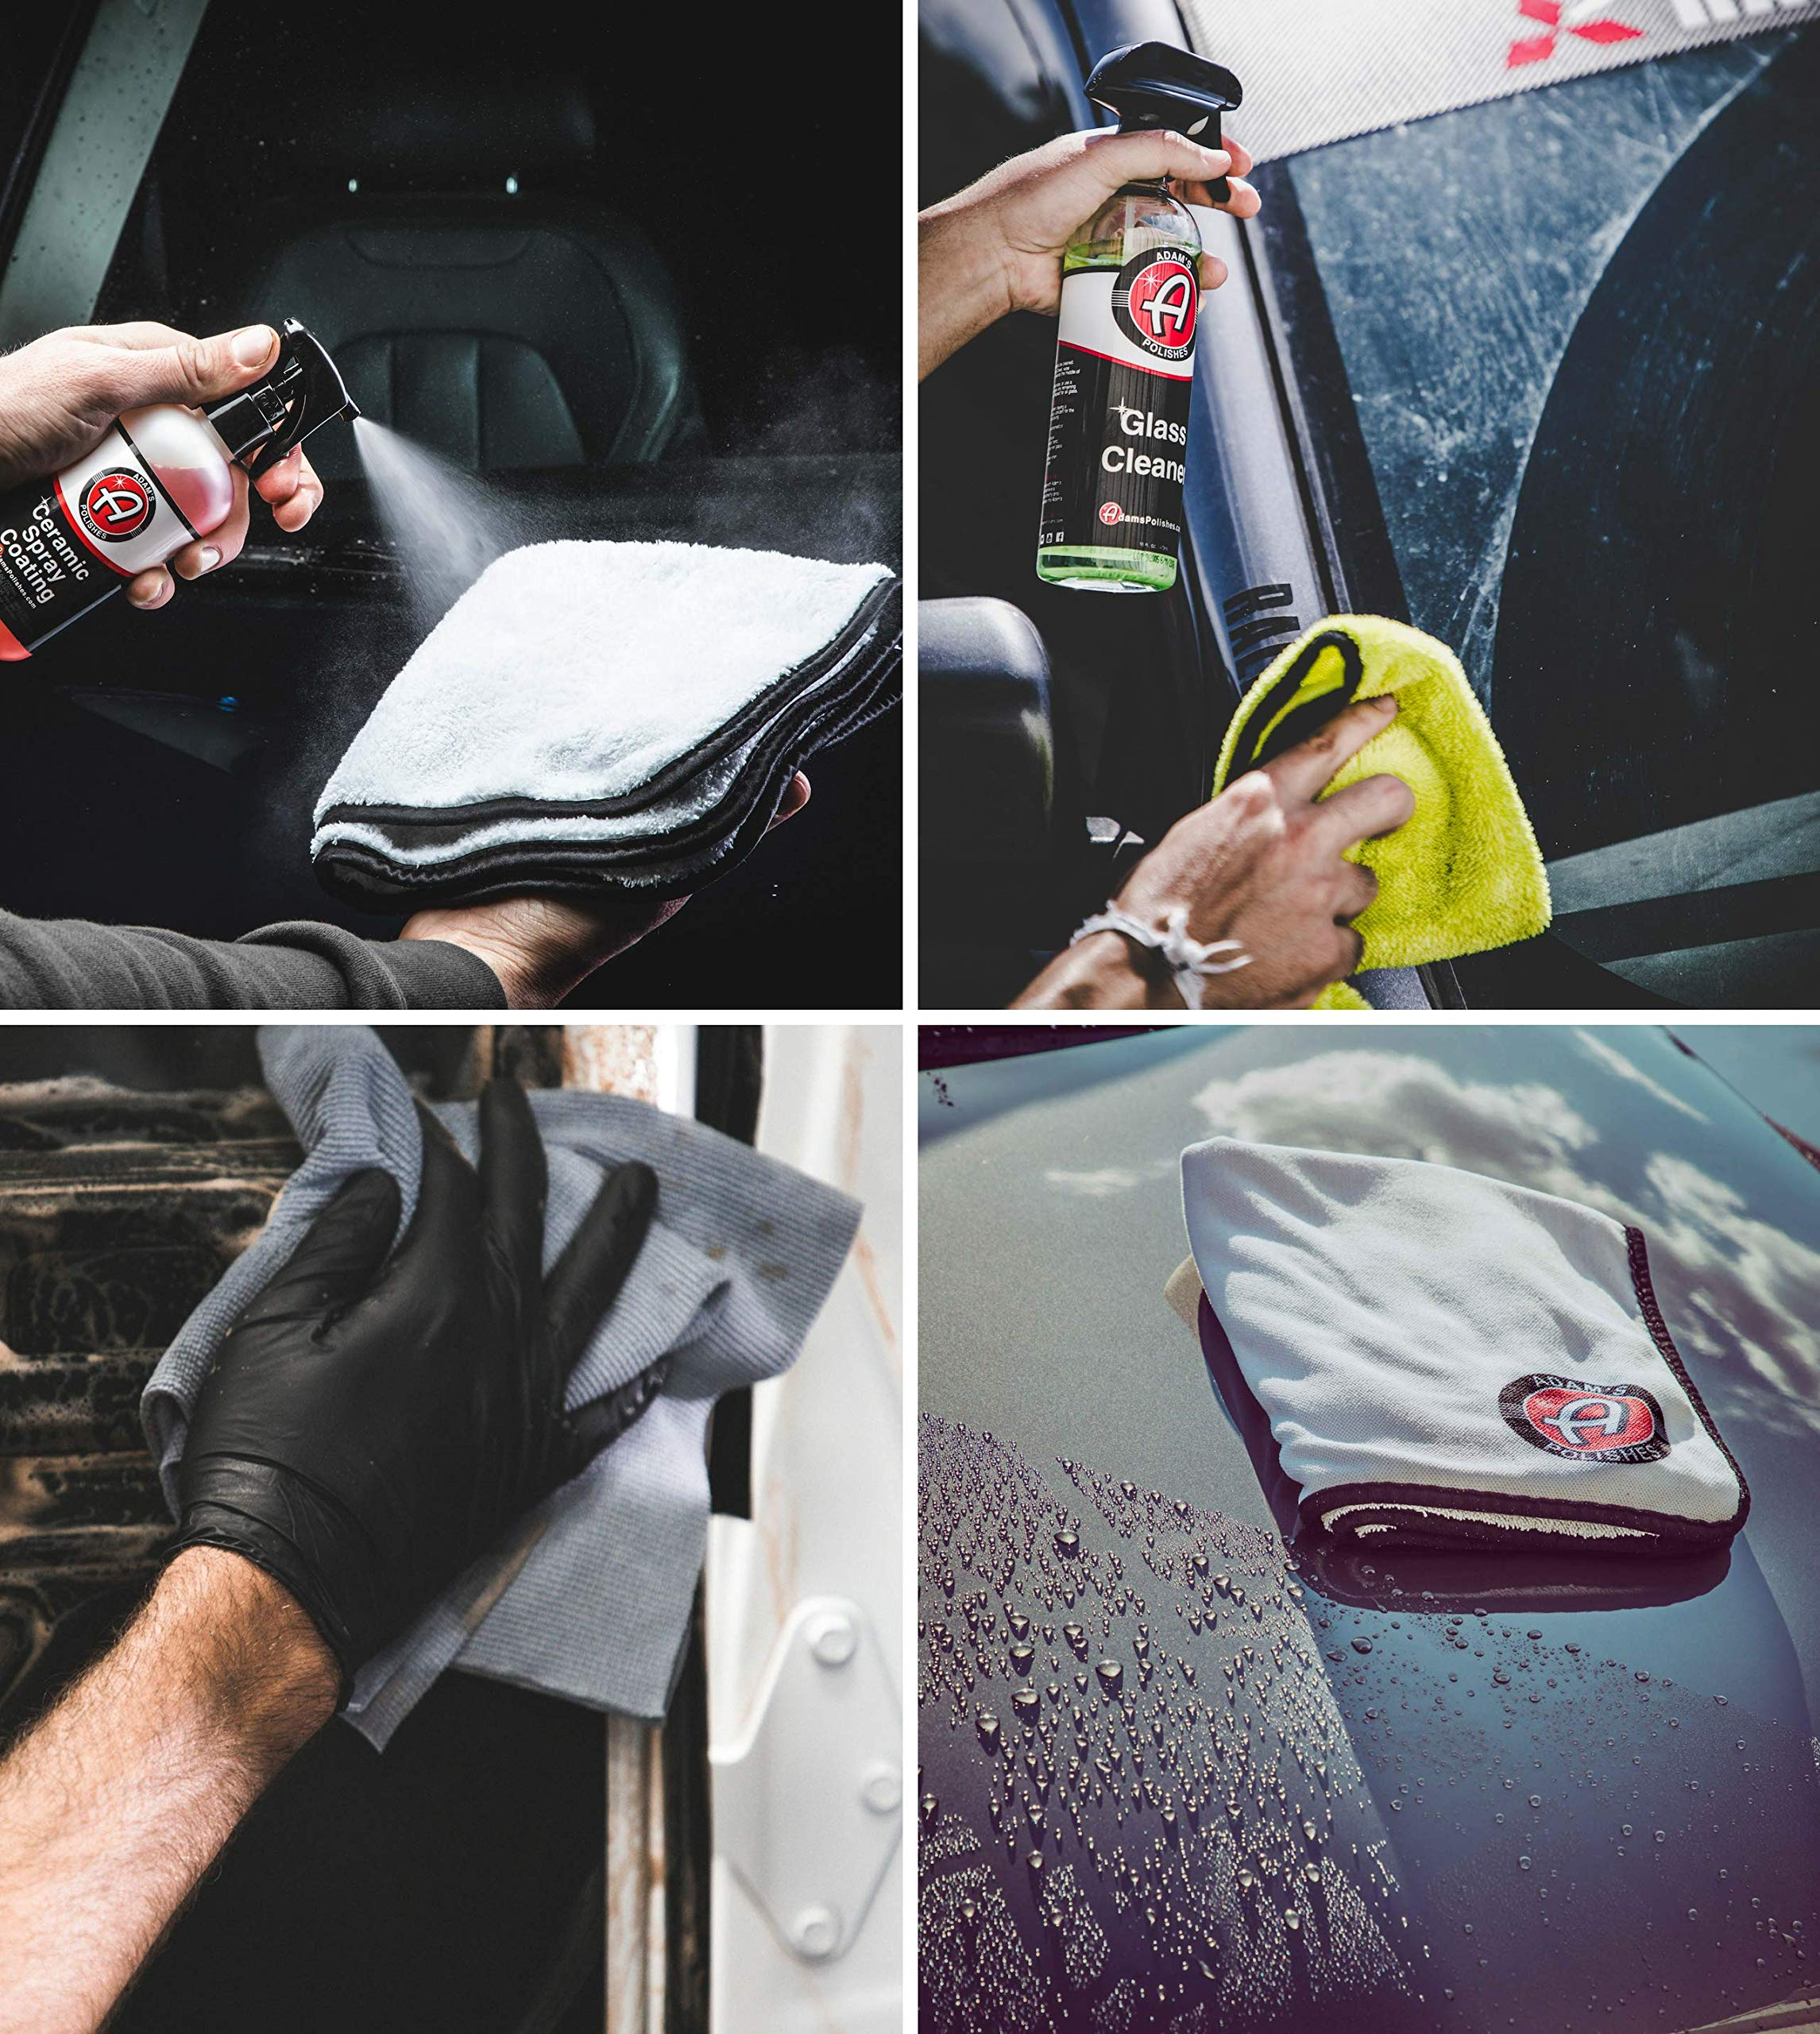 Adam's Essential Towel Bundle - The Best Collection of Car Cleaning, Washing, Drying & Detailing Microfiber Cloths - Wax, Polish, Wash & Dry Your Vehicle with Adam's Soft Car Towels by Adam's Polishes (Image #3)